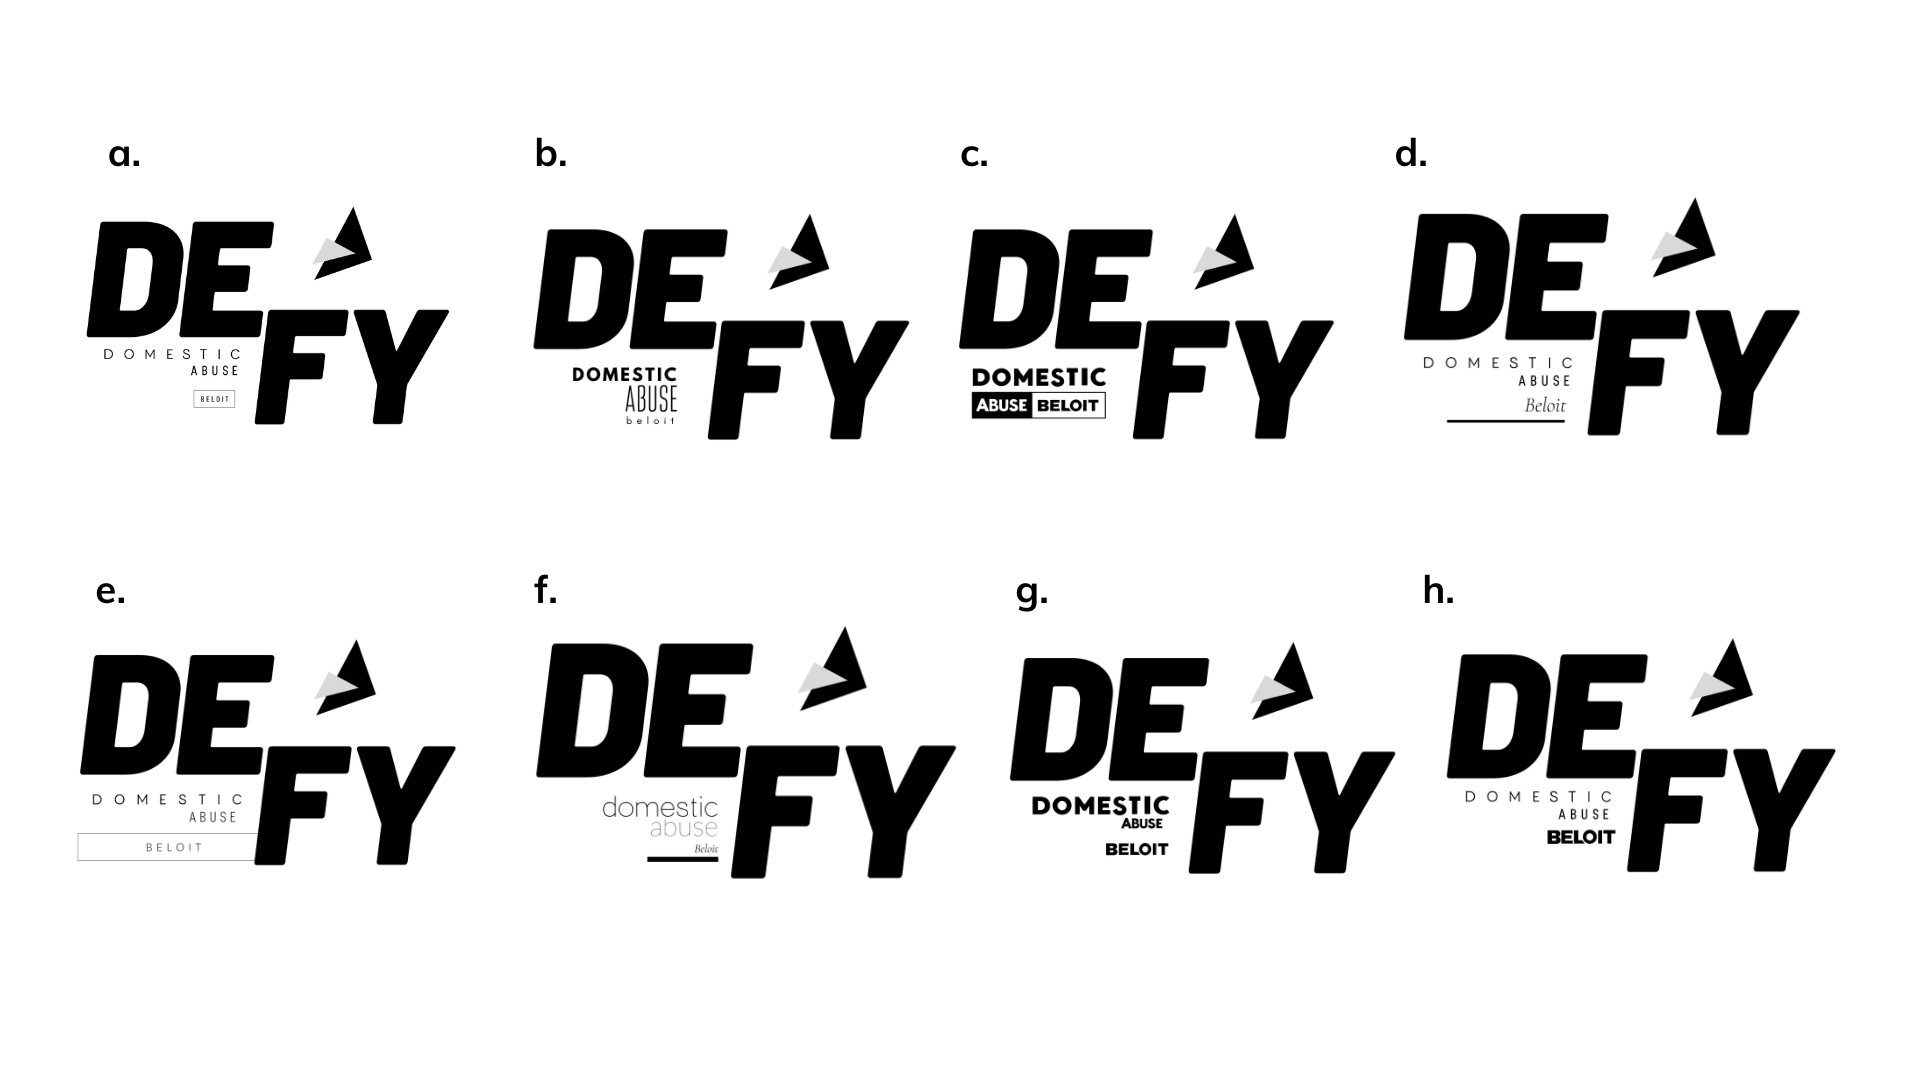 Example of logo refinement created by Owl Street Studio for Defy Domestic Abuse Beloit